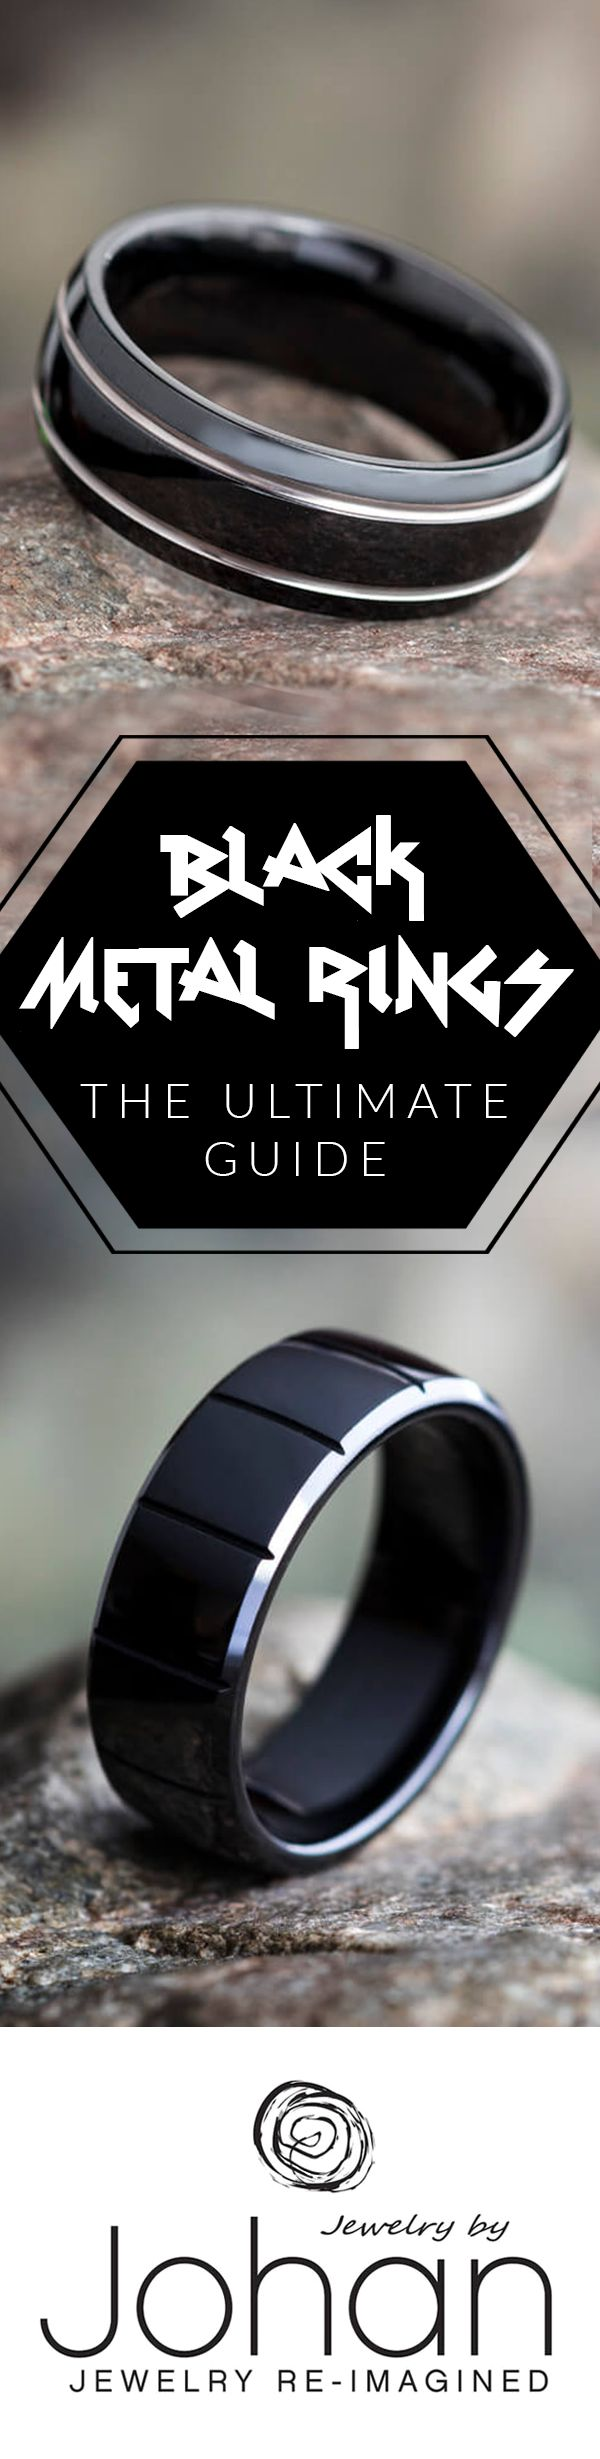 Black wedding bands are a huge trend in the wedding world lately. In our Ultimate Guide to Black Metal Rings, you'll learn about the different types of black metals, as well as the pros and cons of choosing black metal for your ring.